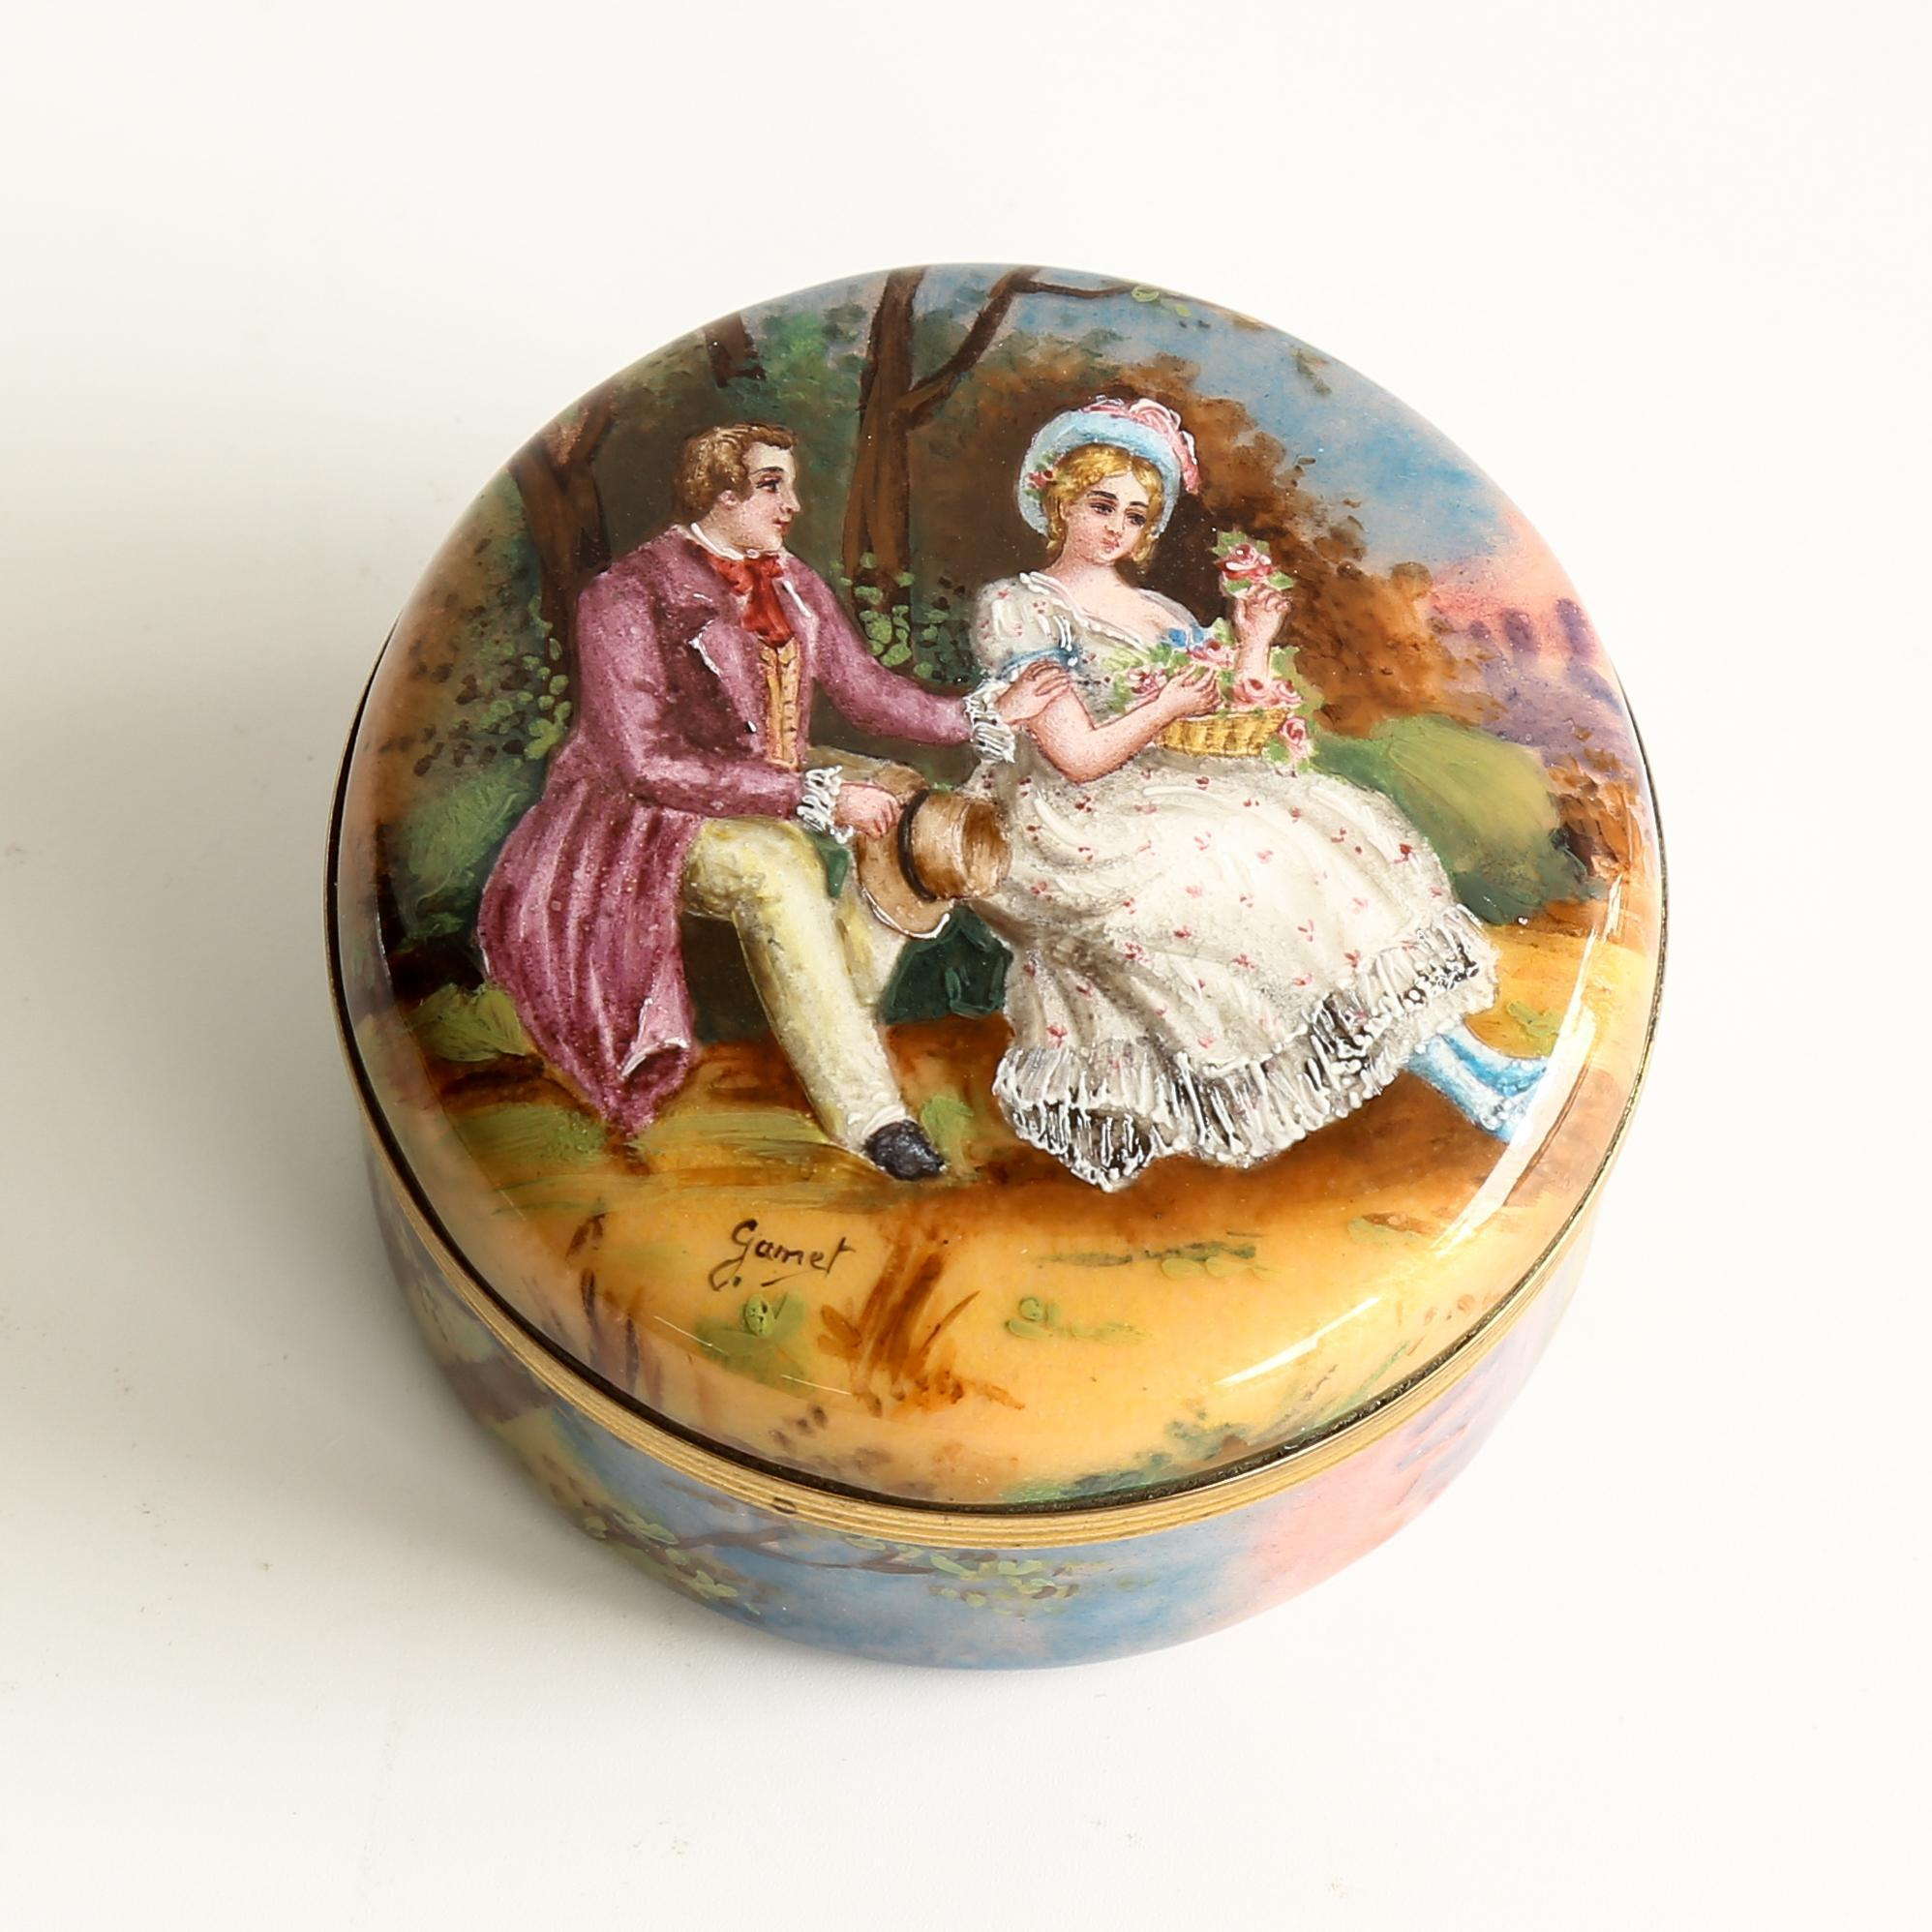 Circa 1890 Antique Artist Signed French Scenic Enameled Box